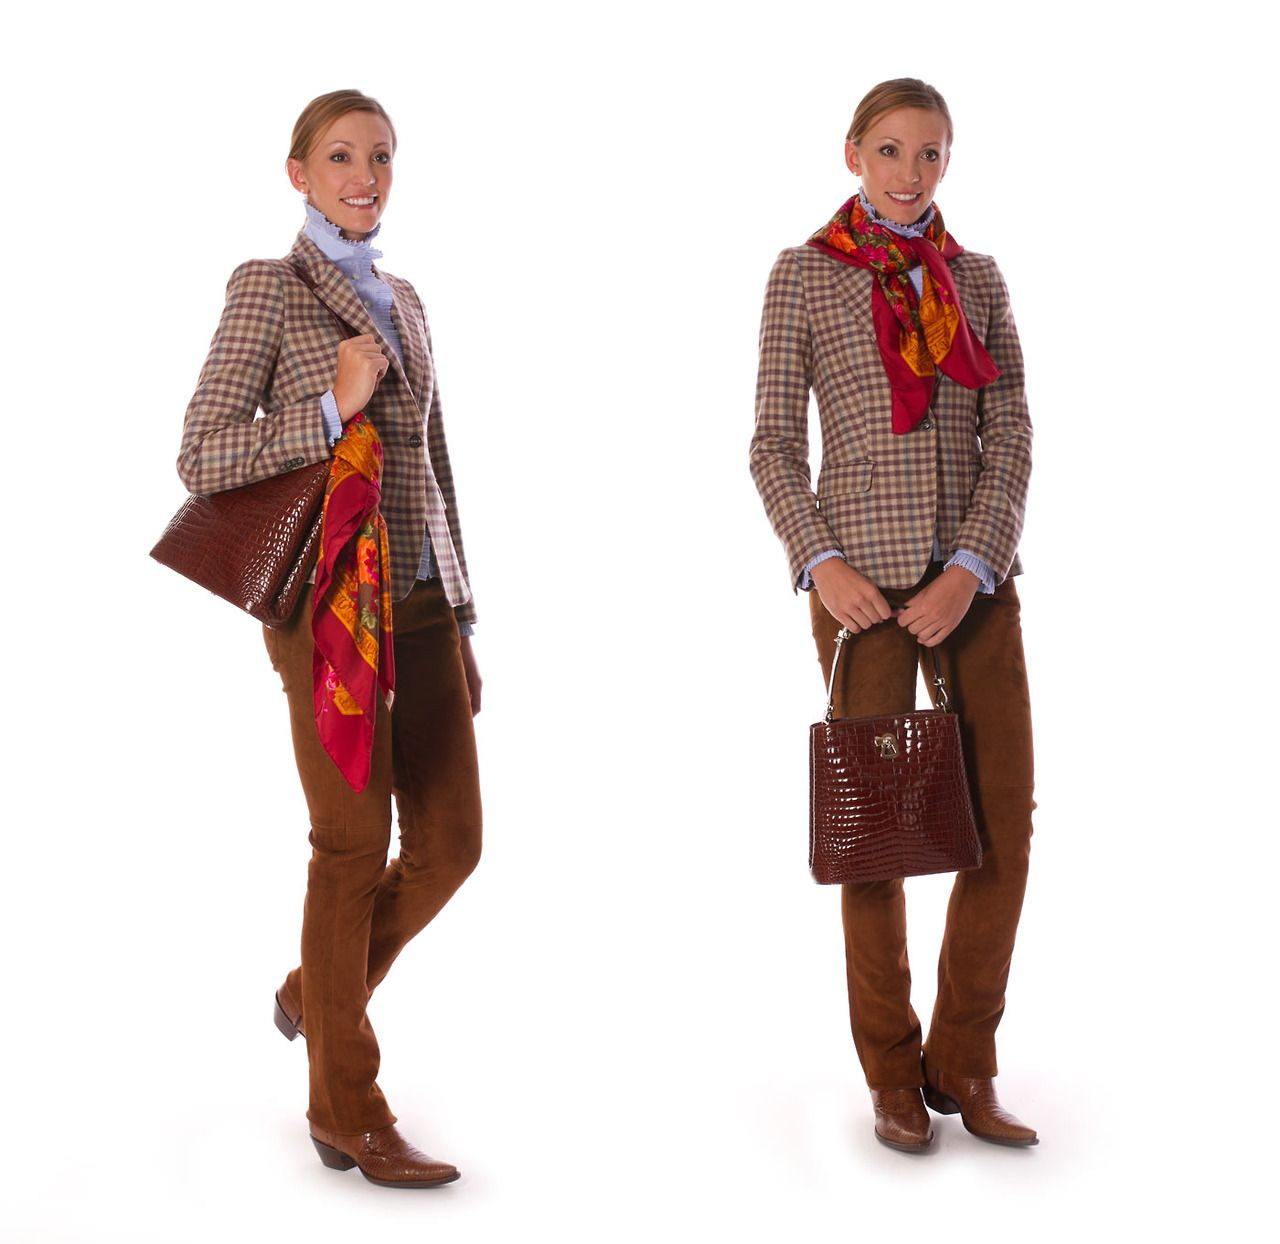 Ladies Tailored Clothing - Fall 2013